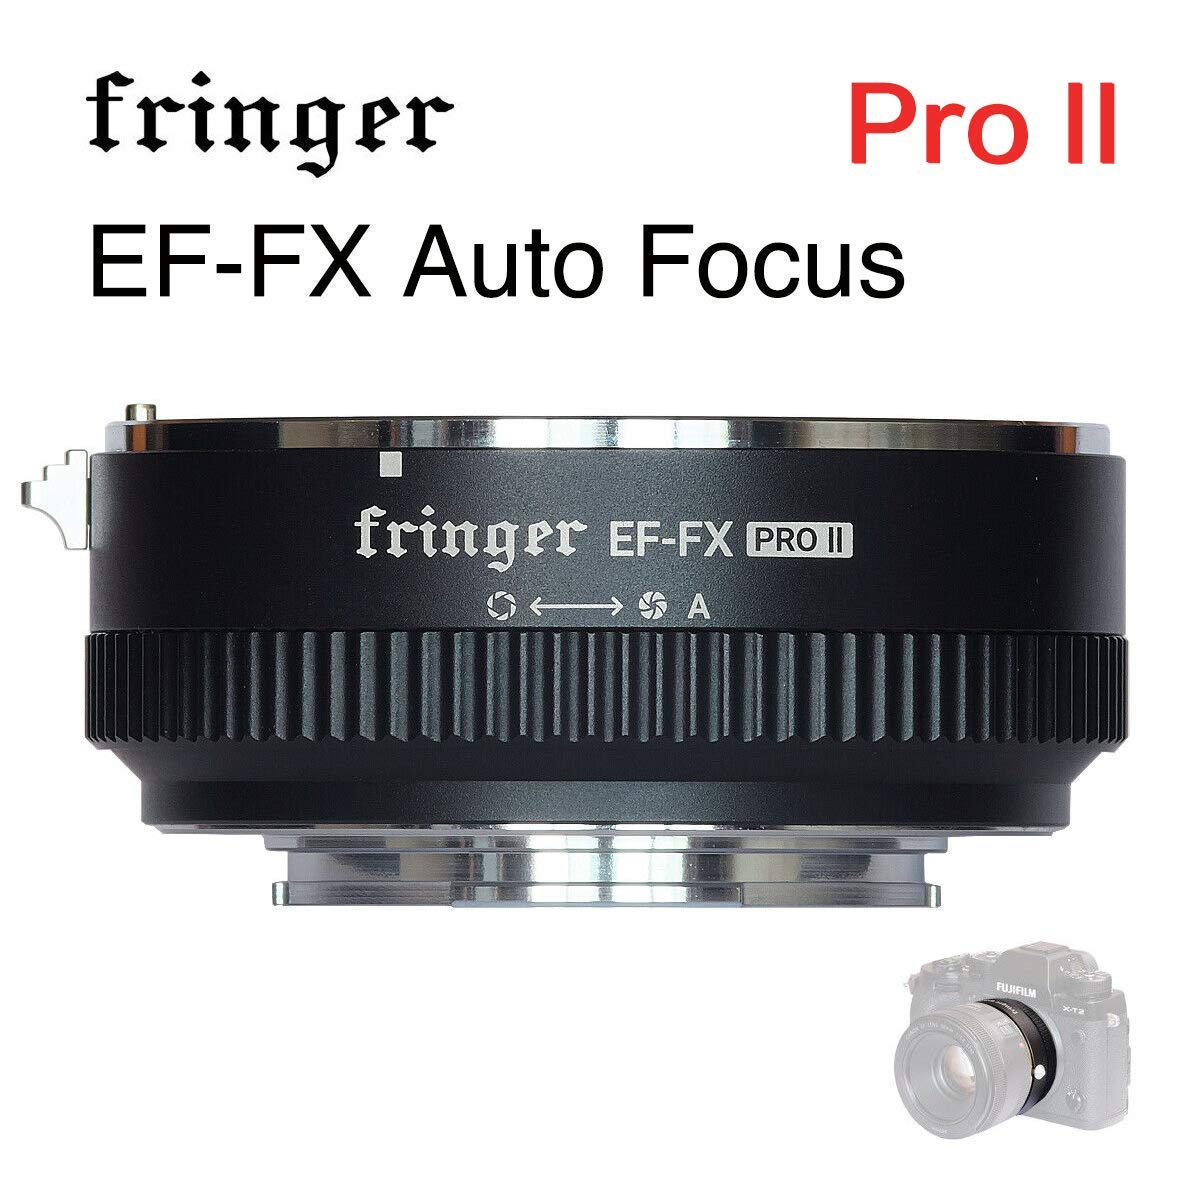 New Version Fringer EF-FX Pro II Auto Focus Mount Adapter Built-in Electronic Aperture for Canon EF EOS Lens to Fujifilm FX Mirroless Camera X-E3 XT20 X-Pro2 X-T2 X-A X-E1 X-M1 XT1 XPRO2 by Fringer